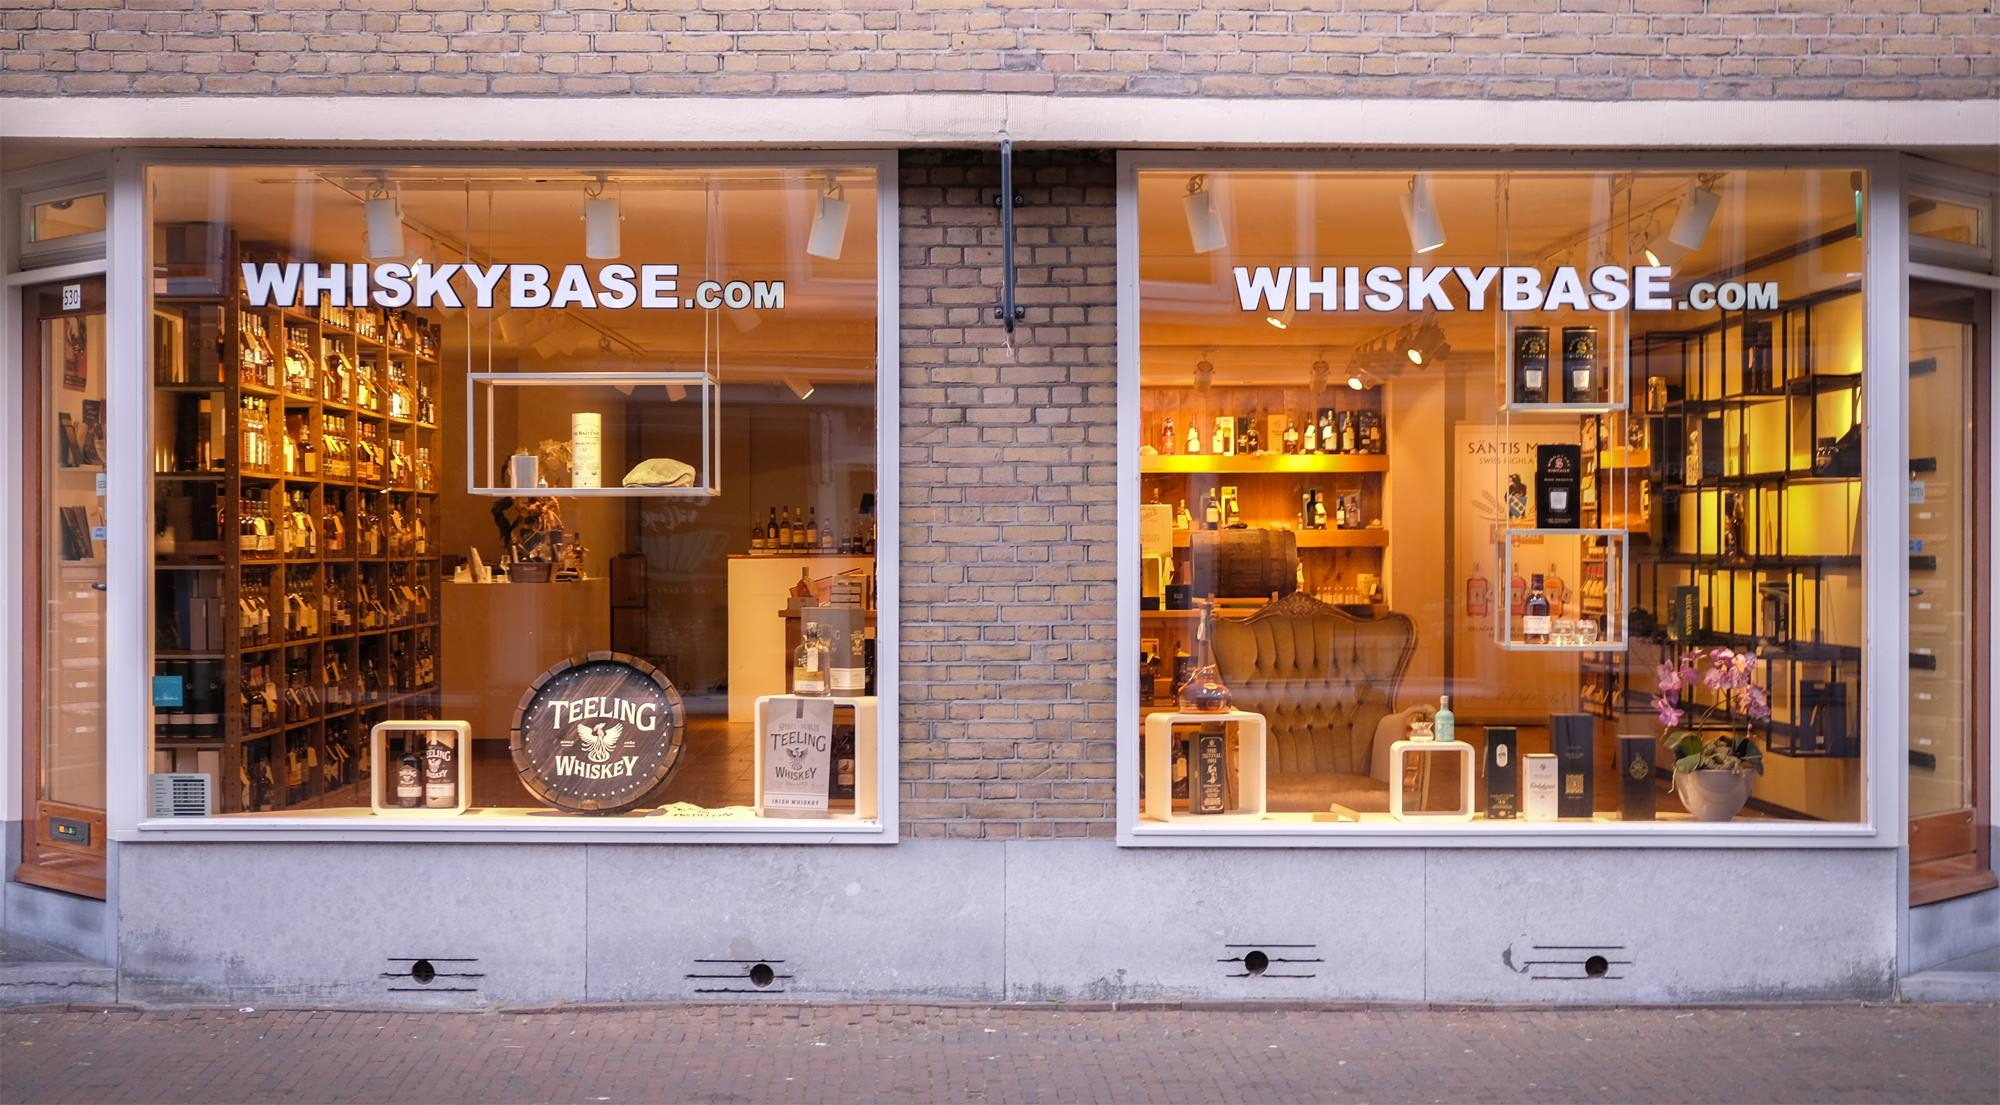 http://archiveswhisky.com/wp-content/uploads/2019/04/Whiskybase-Winkel.jpg